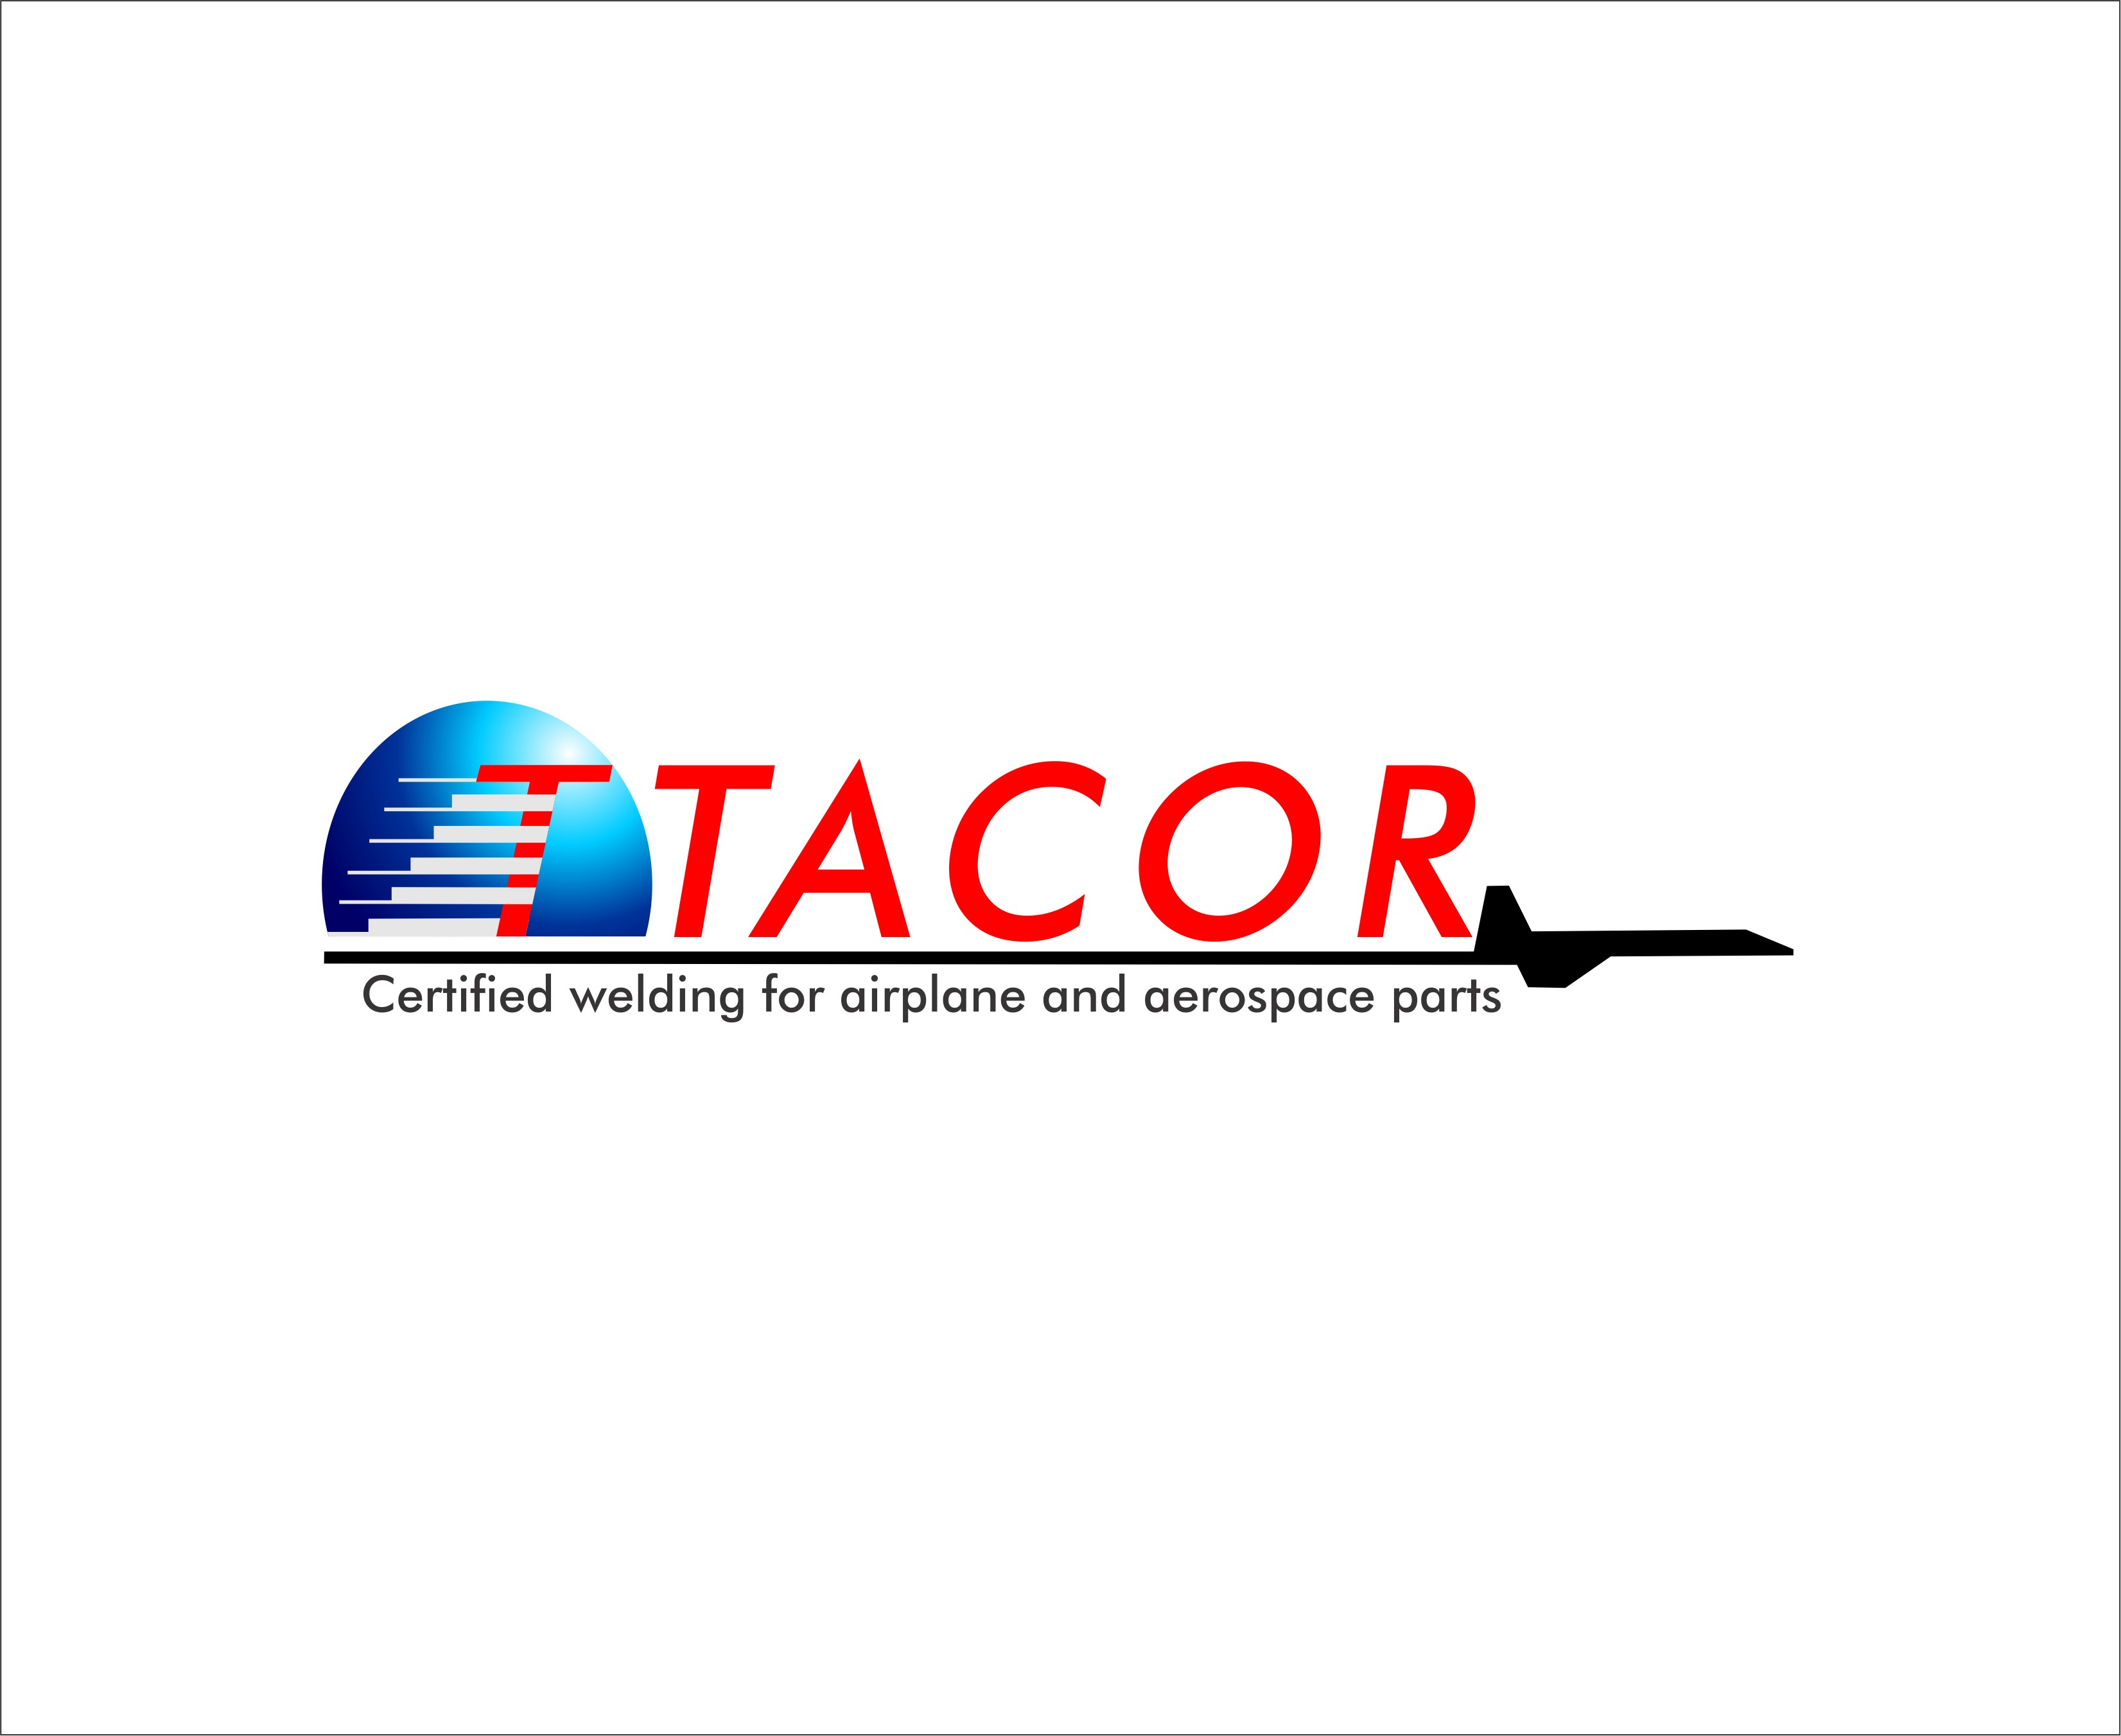 Logo Design by Mhon_Rose - Entry No. 39 in the Logo Design Contest Artistic Logo Design for TACOR.